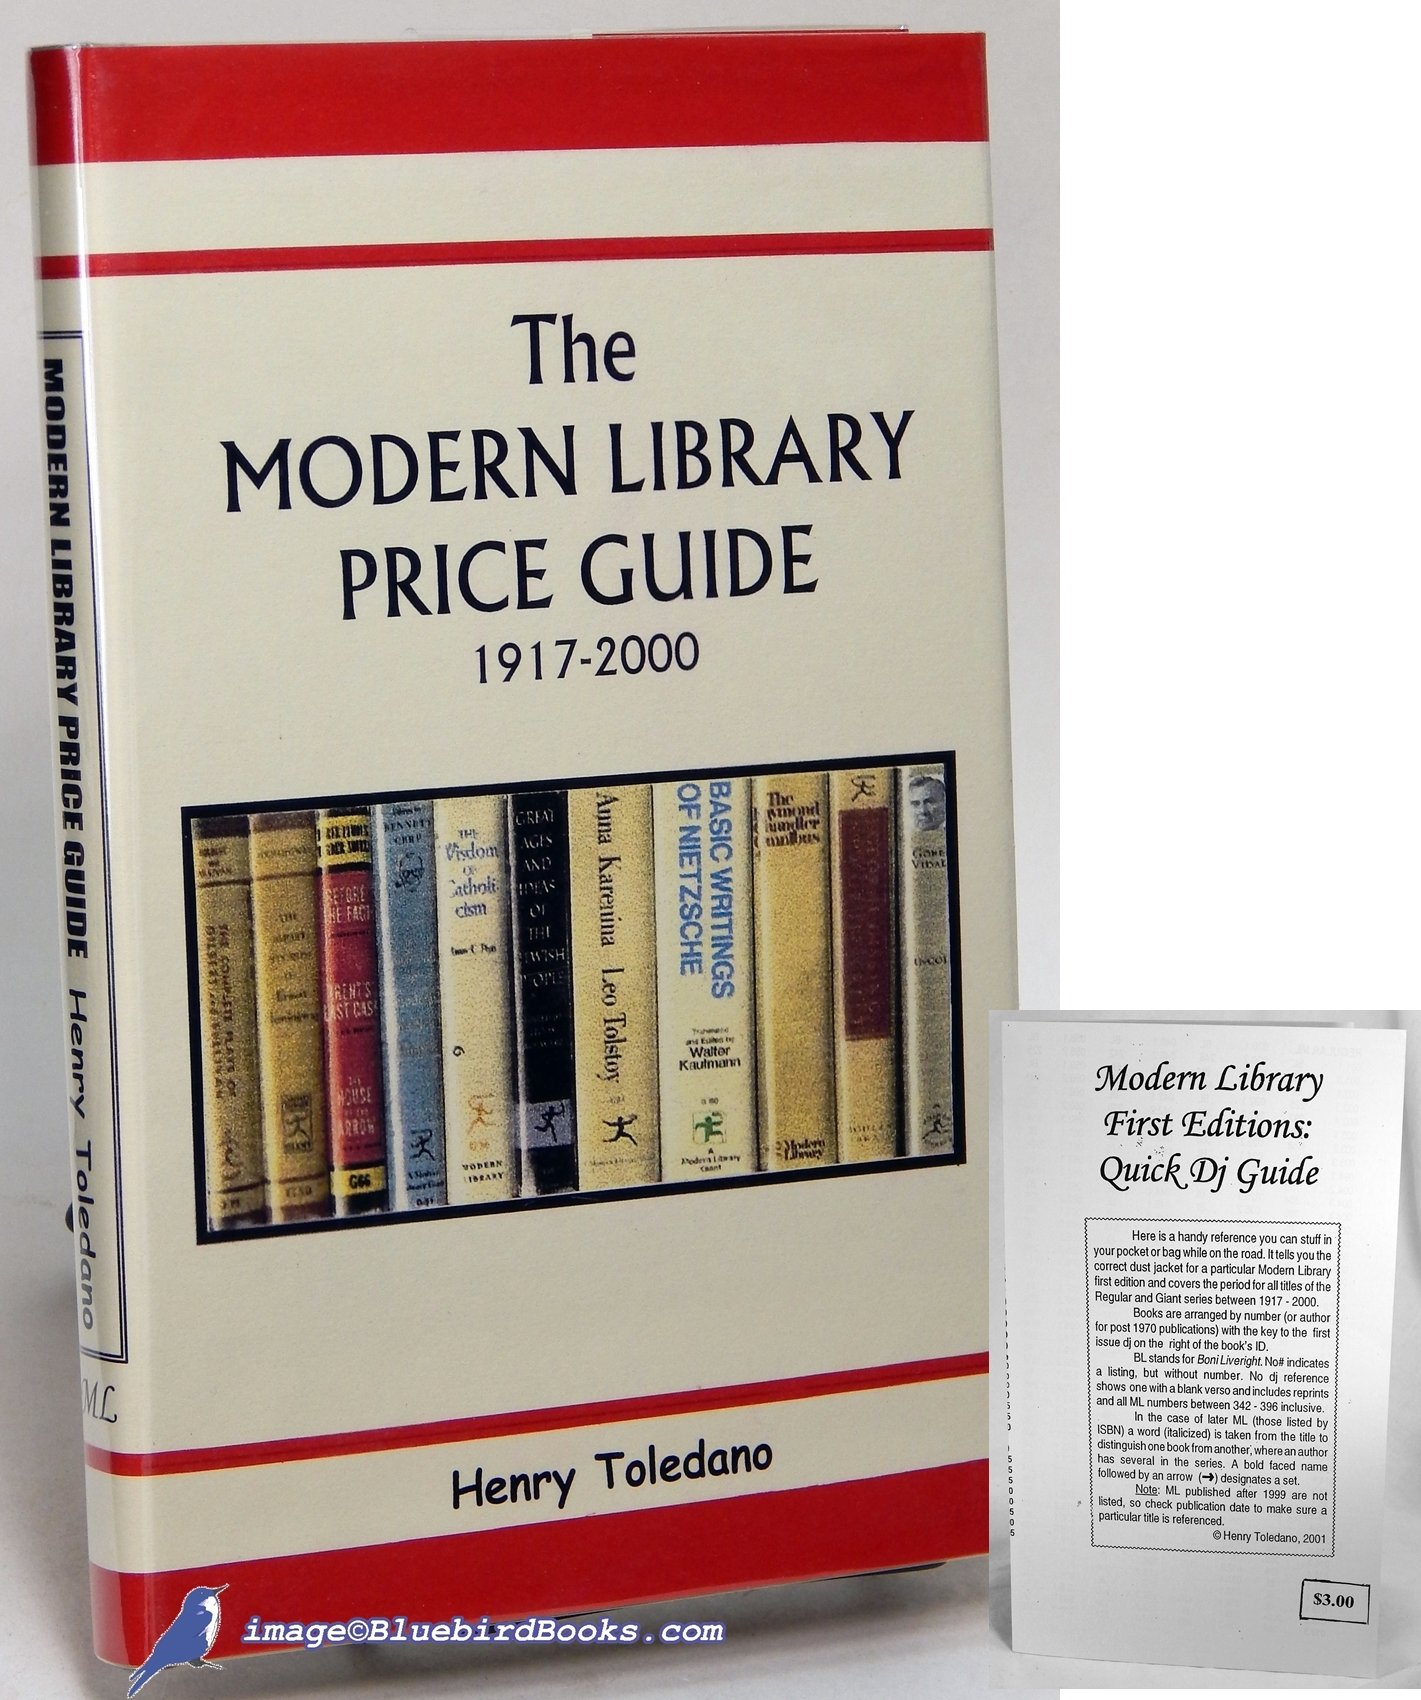 Henry toledano's modern library price guide.